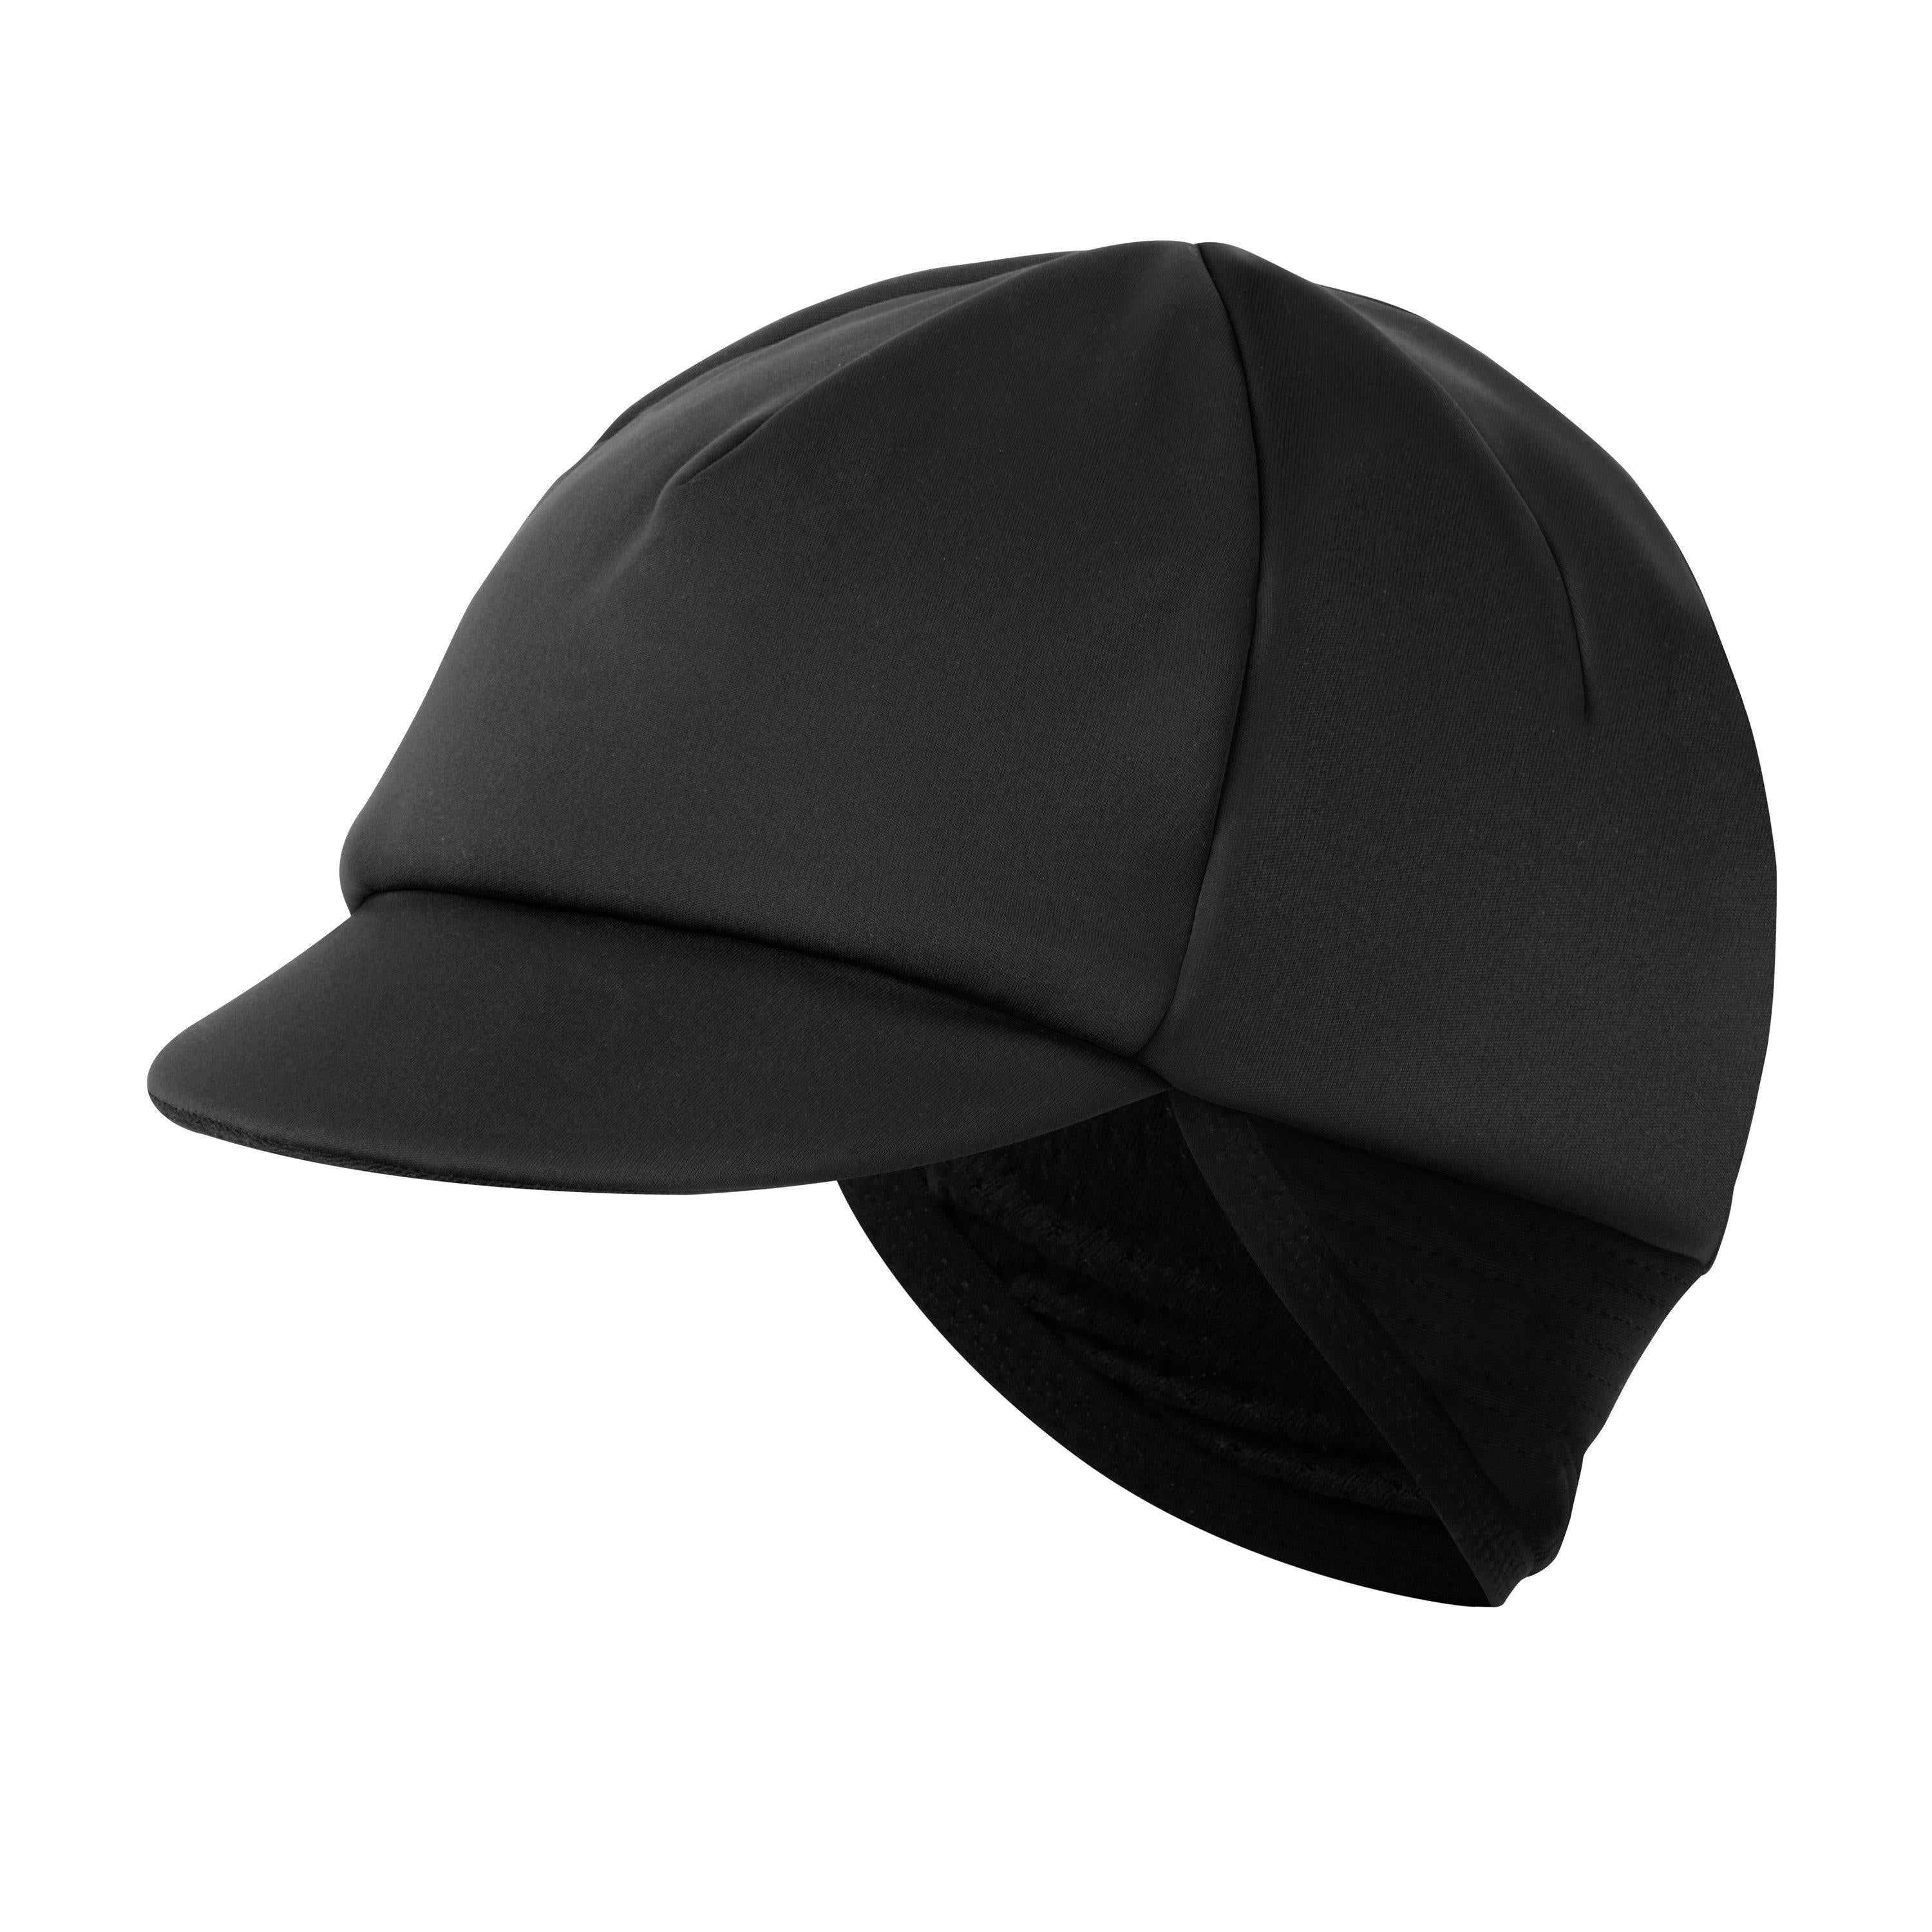 Sportful-Sportful Helmet Liner-Black-UNI-SF205500028-saddleback-elite-performance-cycling